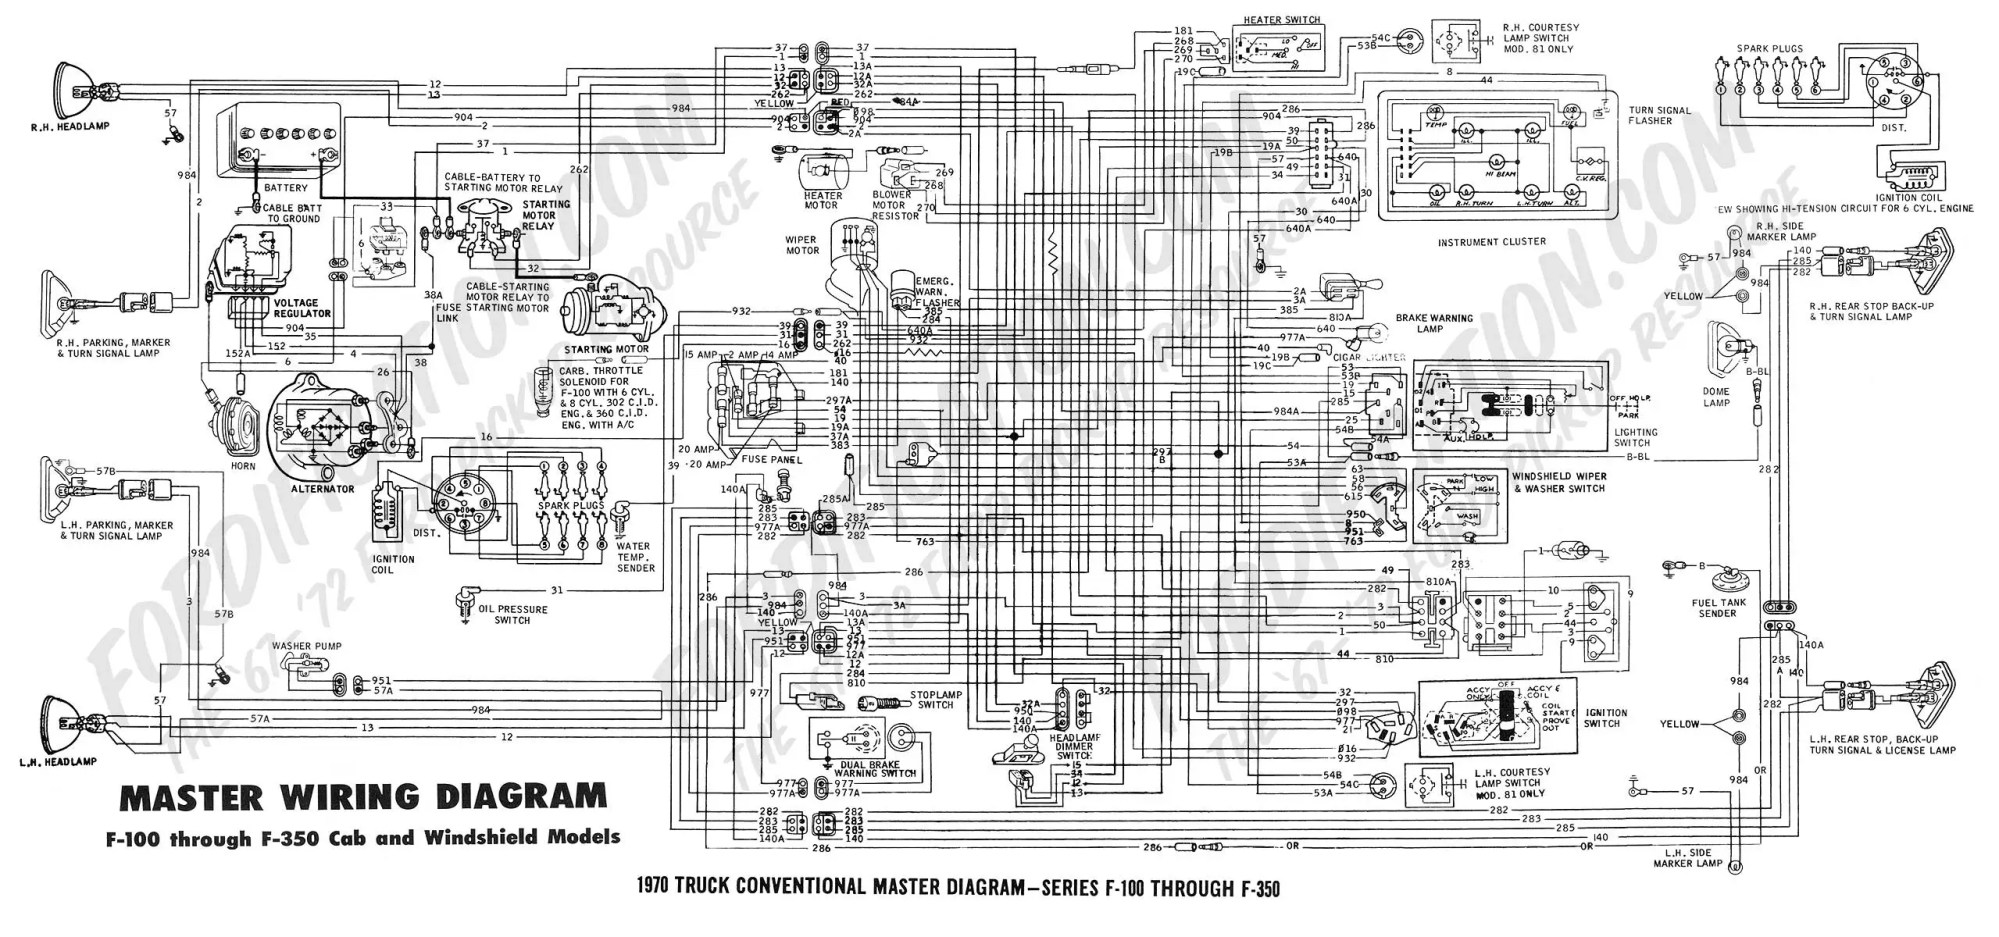 hight resolution of 1995 ford f700 battery wiring diagram electrical wiring diagrams ford electrical wiring diagrams 1986 f700 wiring diagram